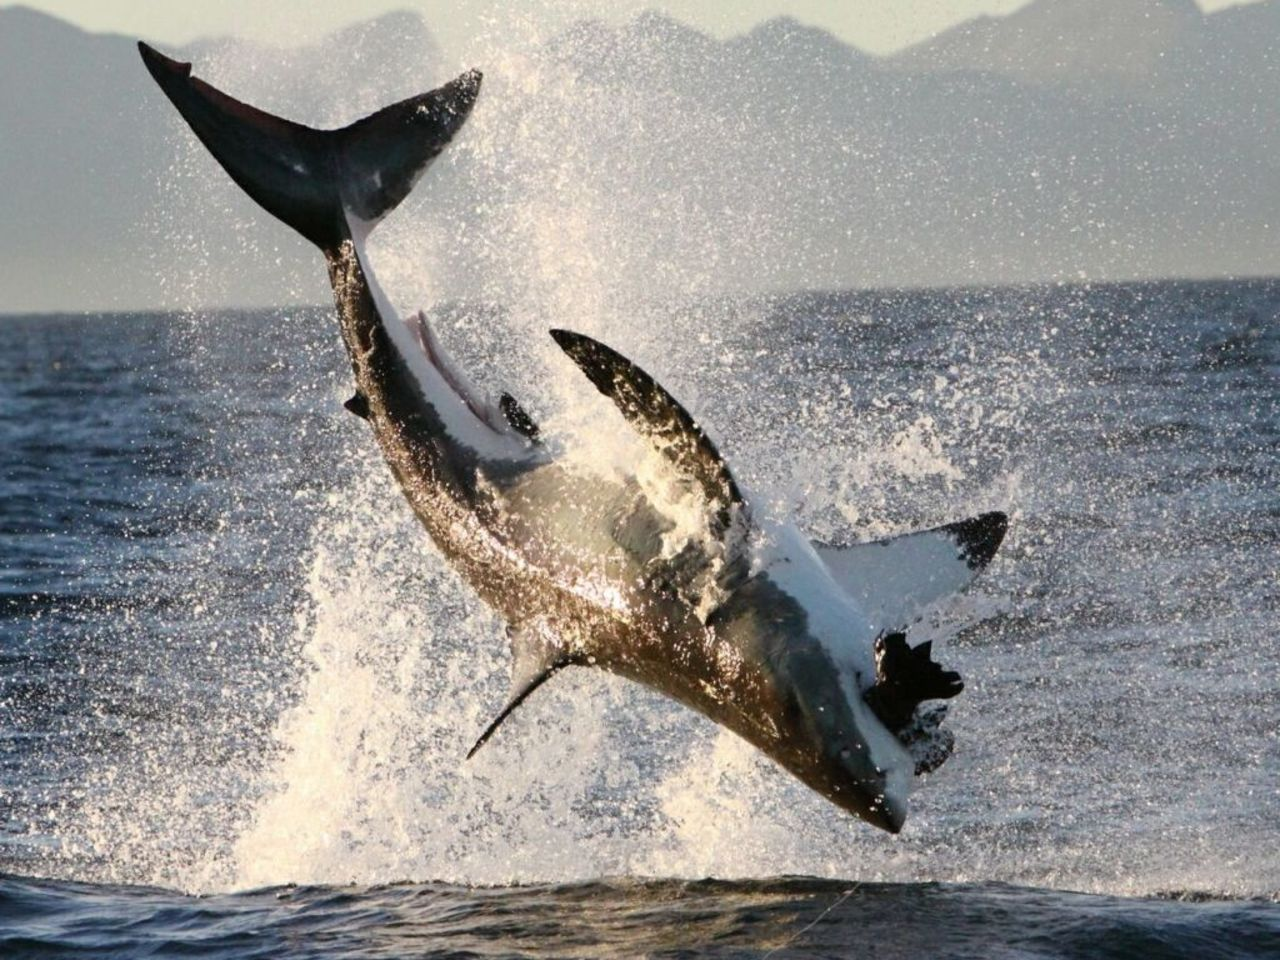 Great Whites often seen hitting a Seal